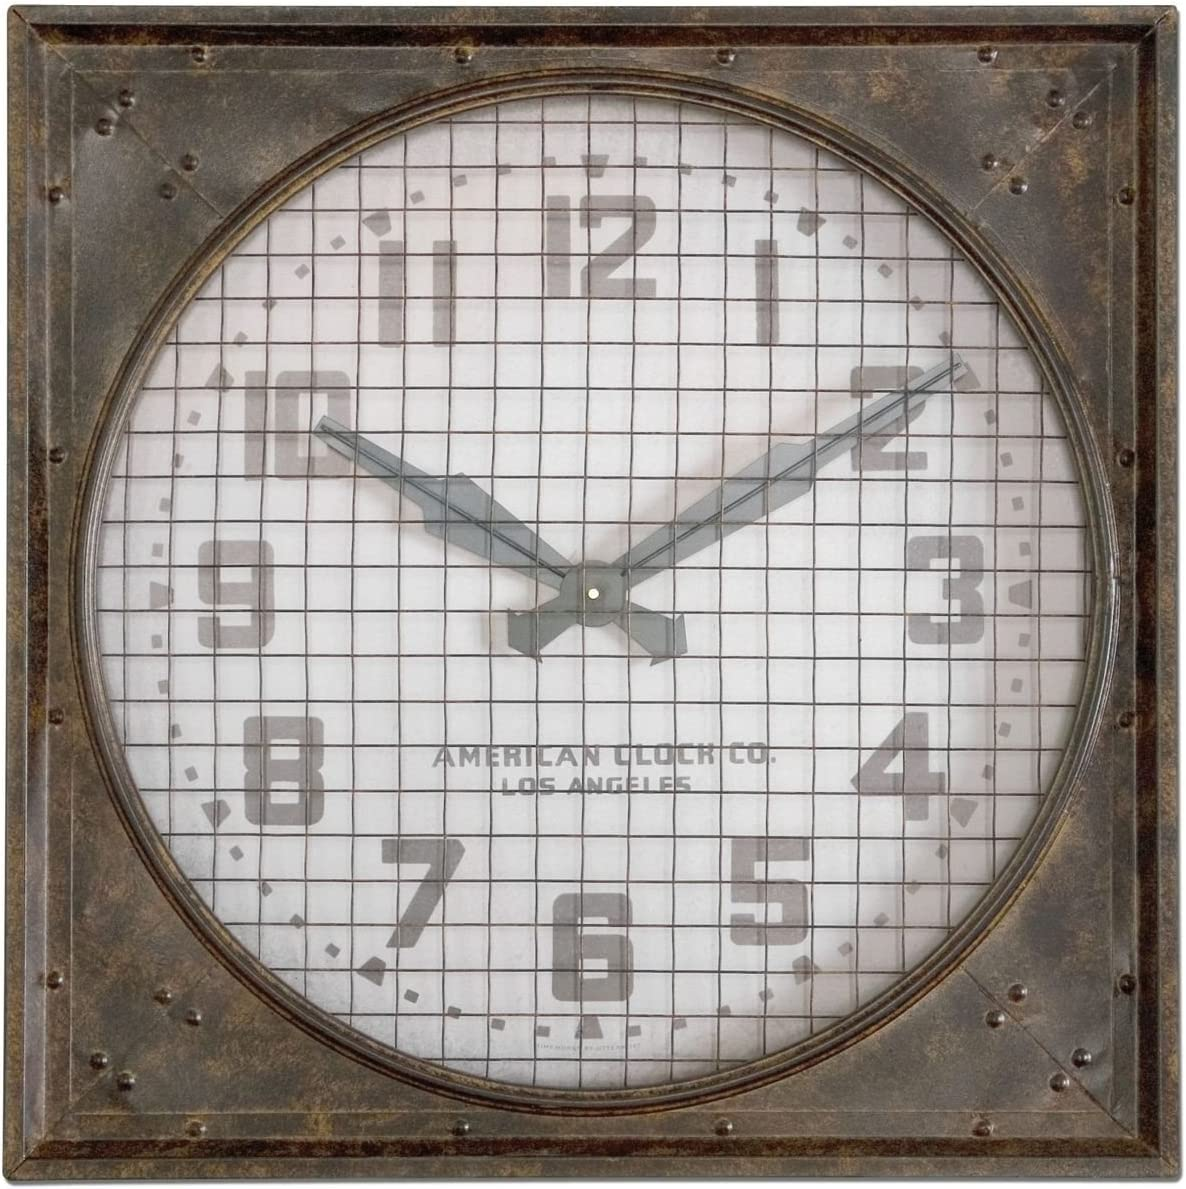 Intelligent Design Retro Industrial Metal Wall Clock Riveted Cage Grille Square Large